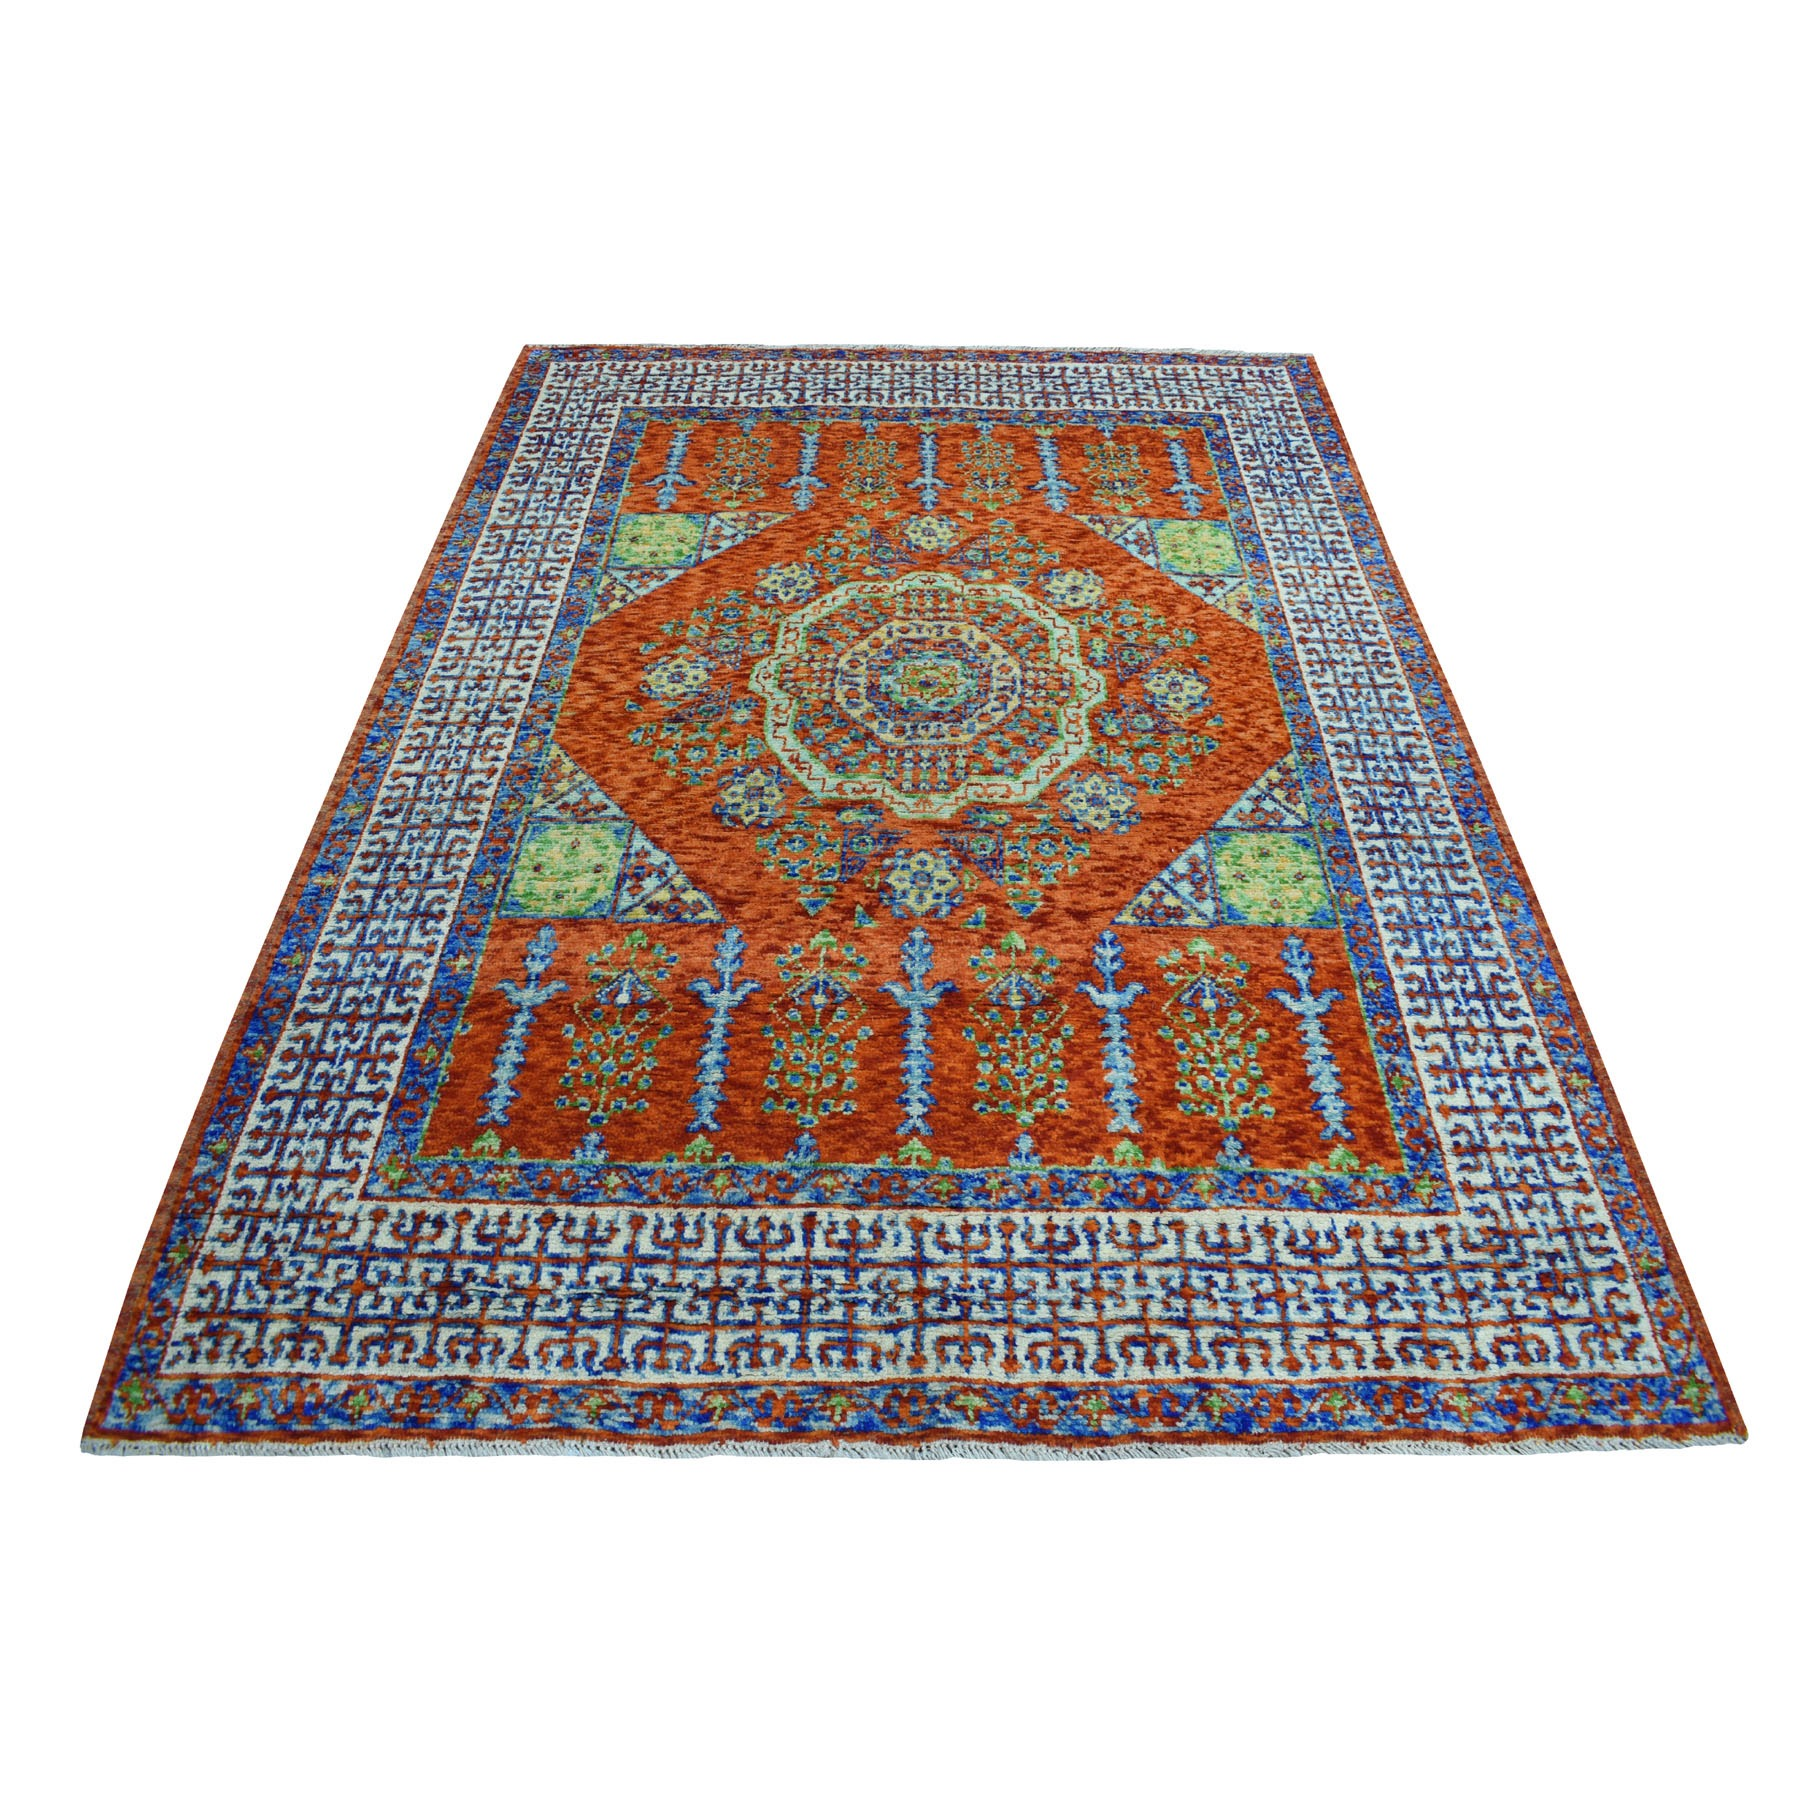 "5'9""x7'7"" Natural Dyes Mamluk Desing Colorful Afghan Baluch Pure Wool Hand Knotted Oriental Rug"